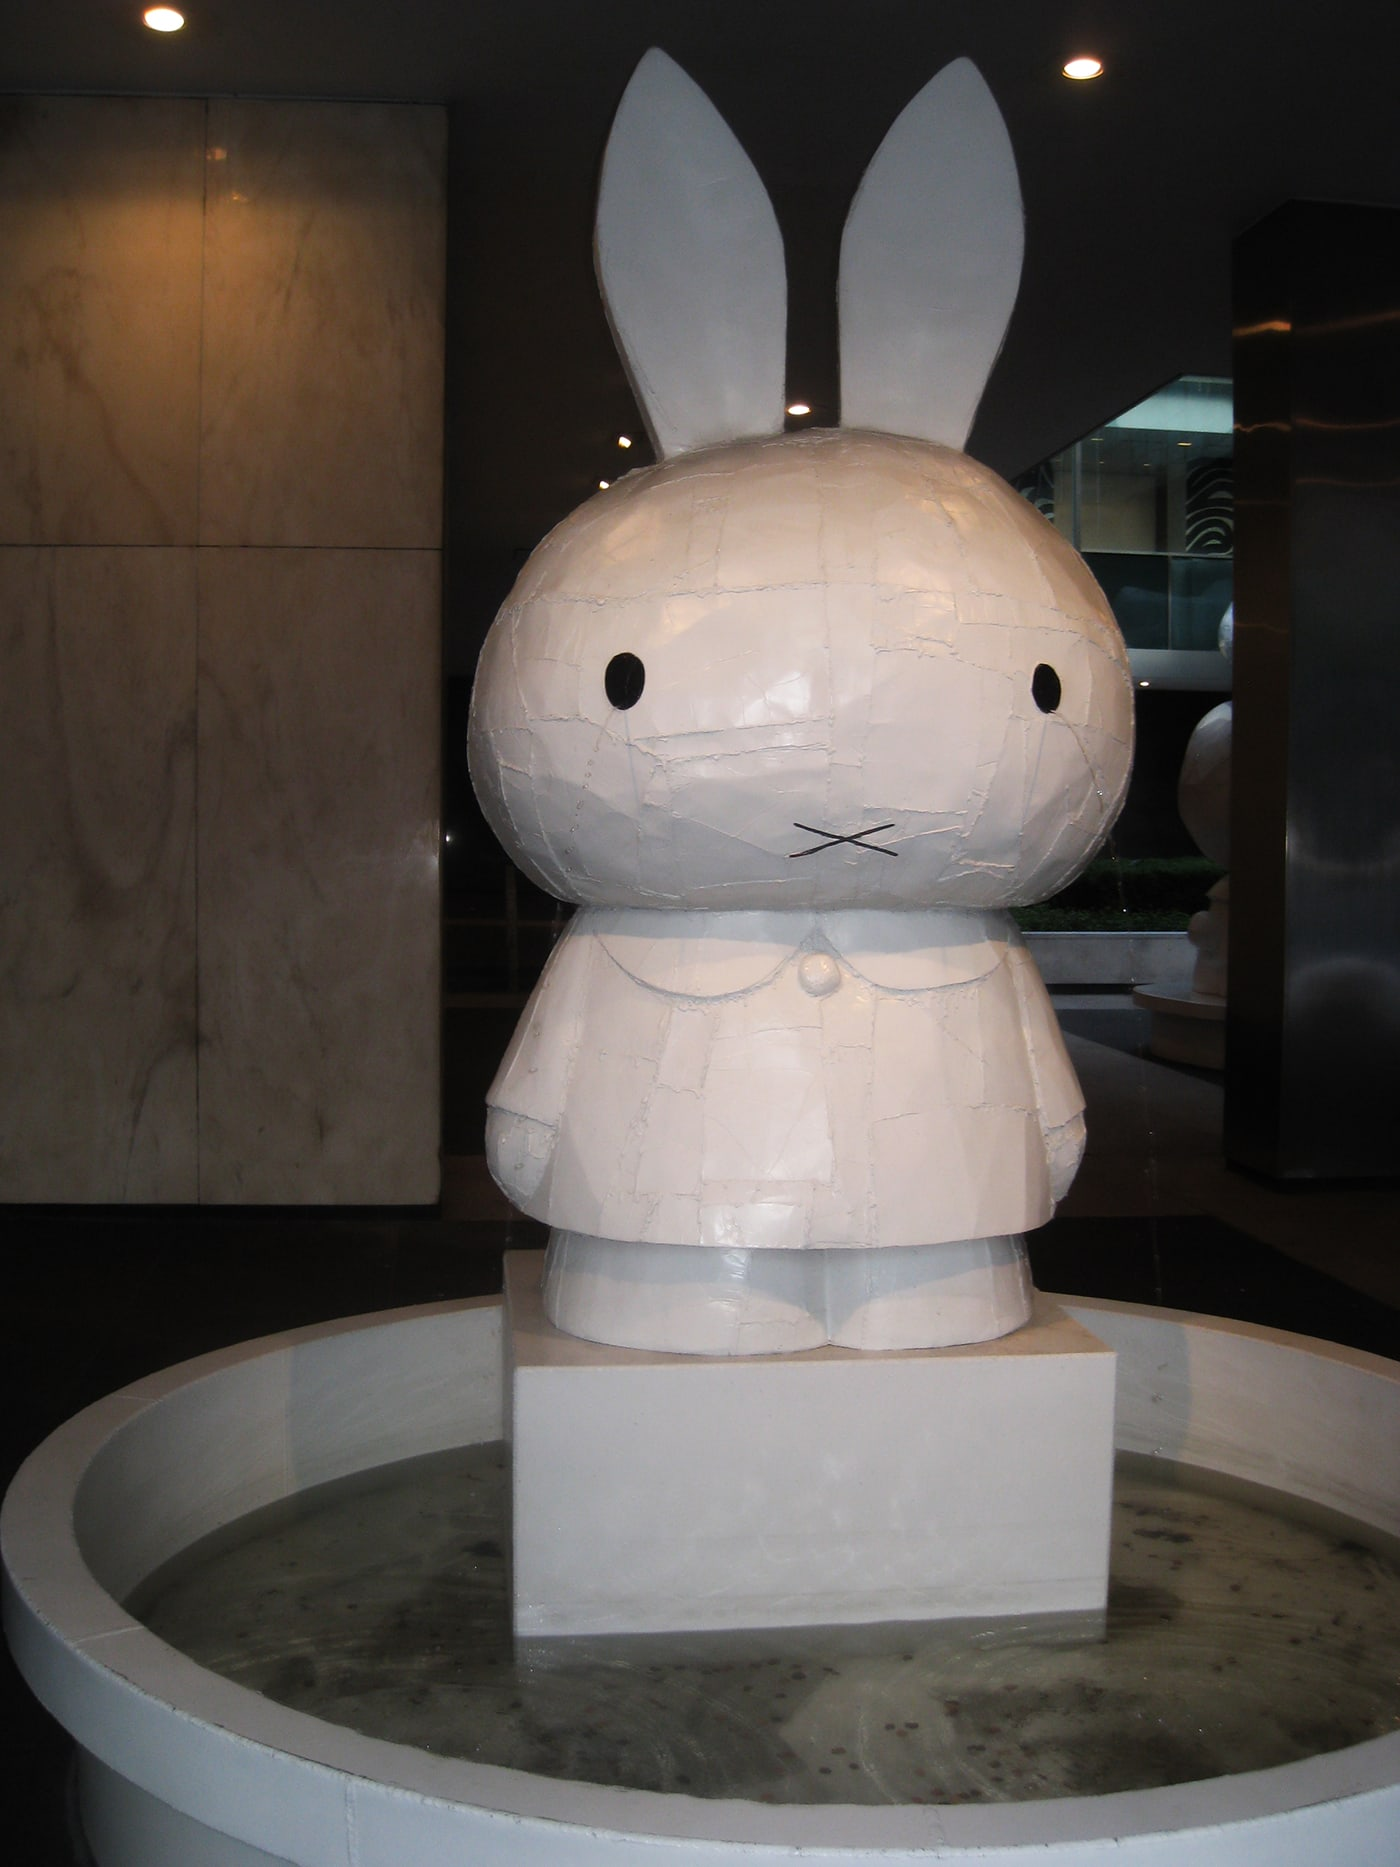 Miffy Hello Kitty Statues at the Lever House Art Collection in New York City.